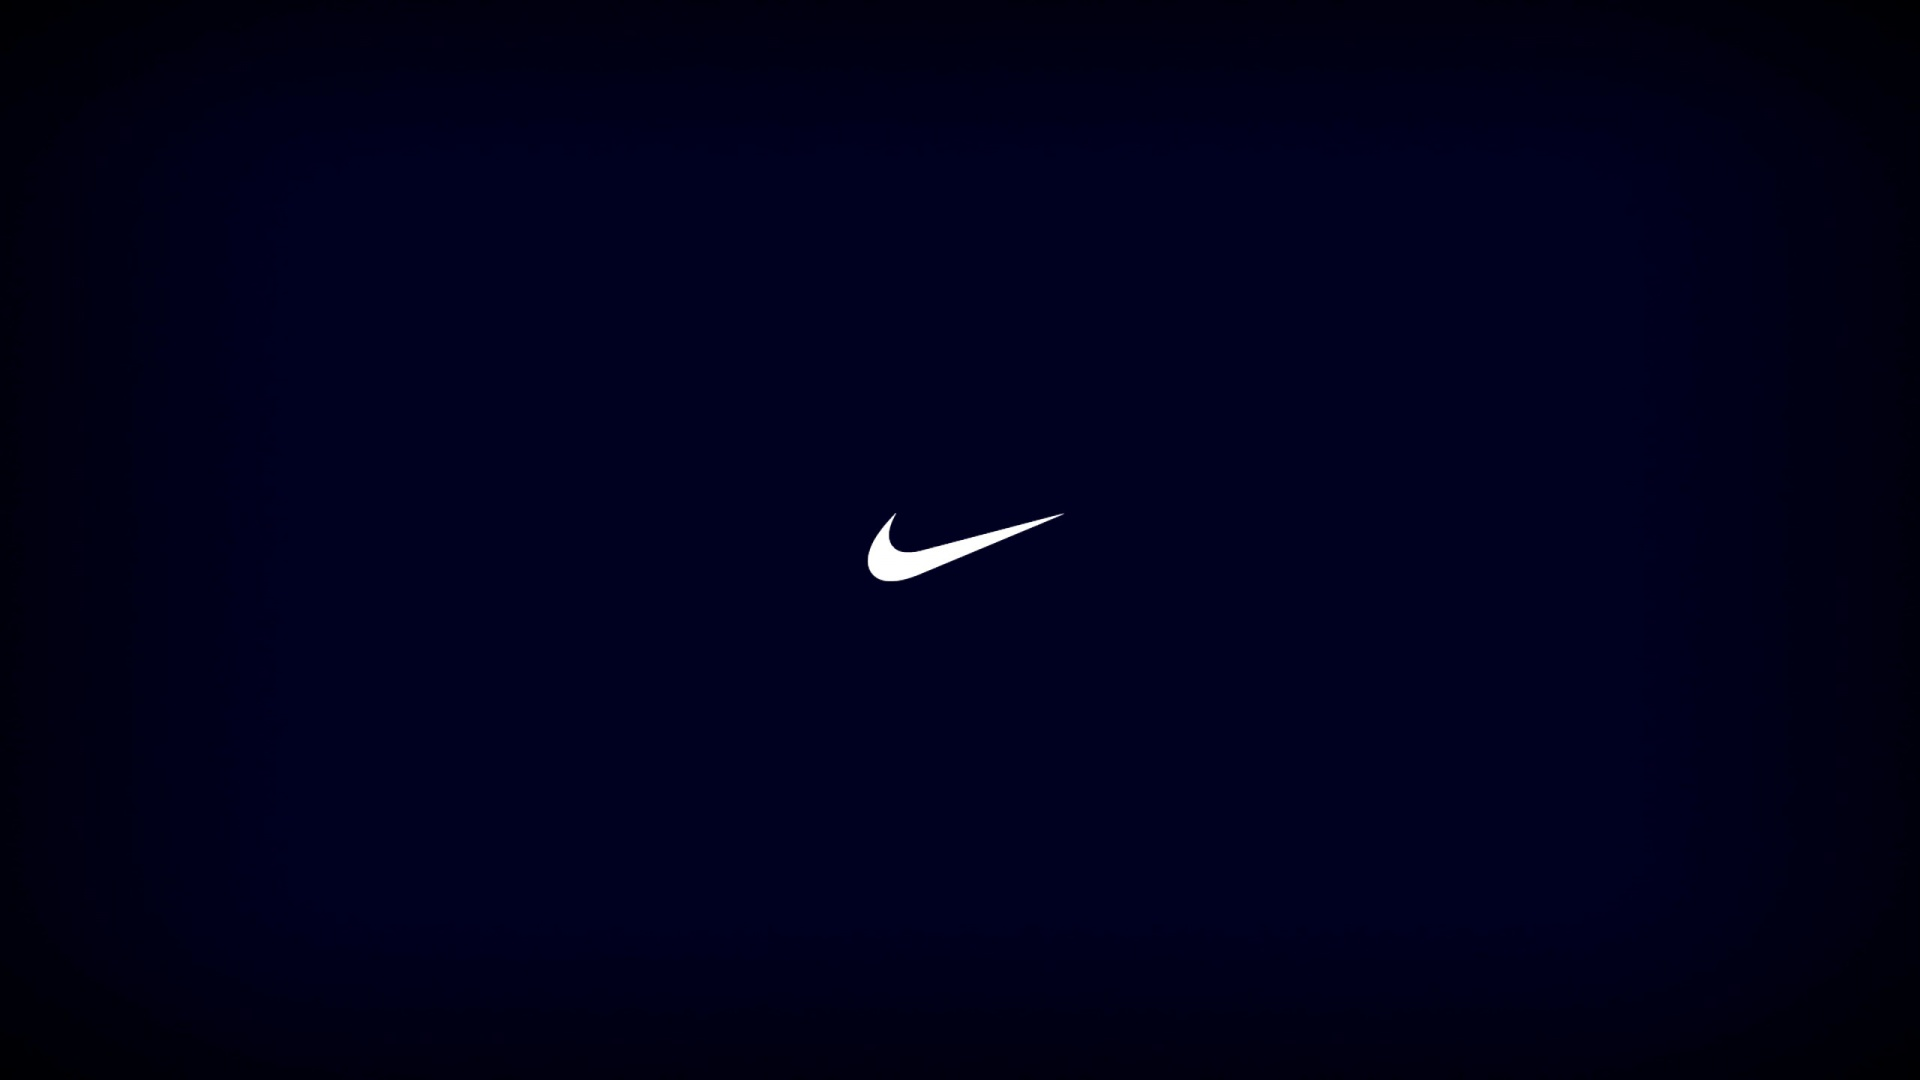 Hd wallpaper nike - Nike Wallpaper Hd